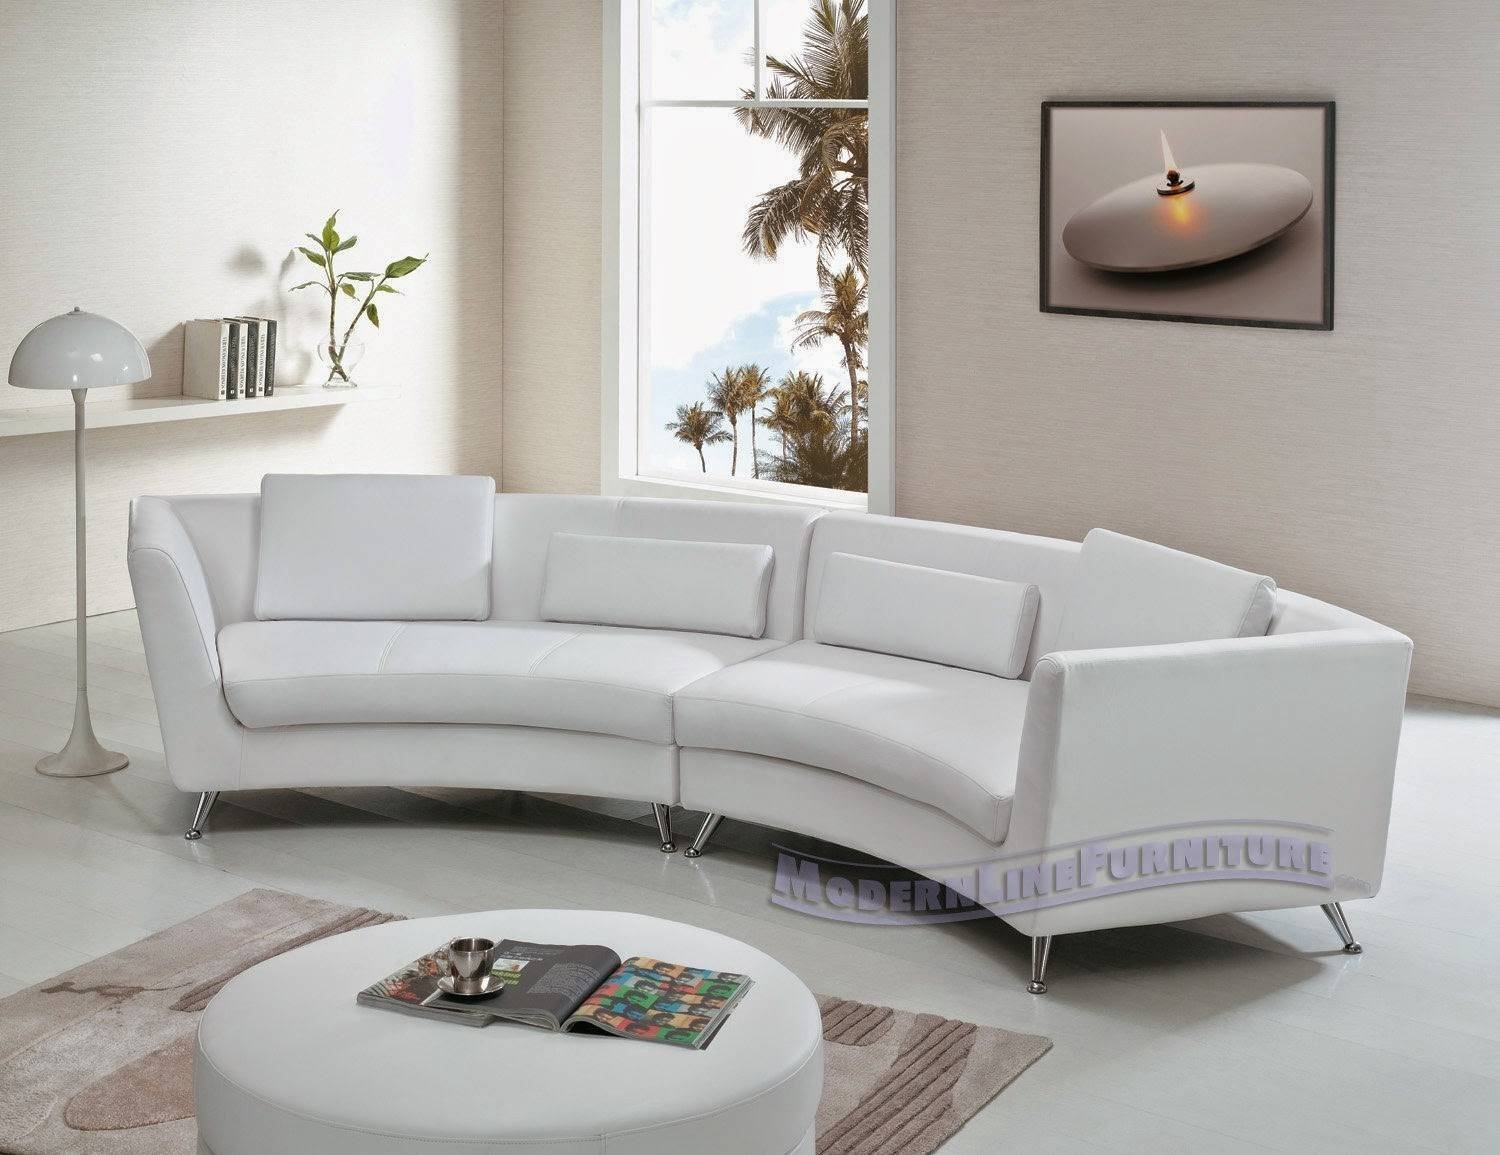 Sofa Curved: Curved Sofa For Bay Window Pertaining To Sofas For Bay Window (View 13 of 15)